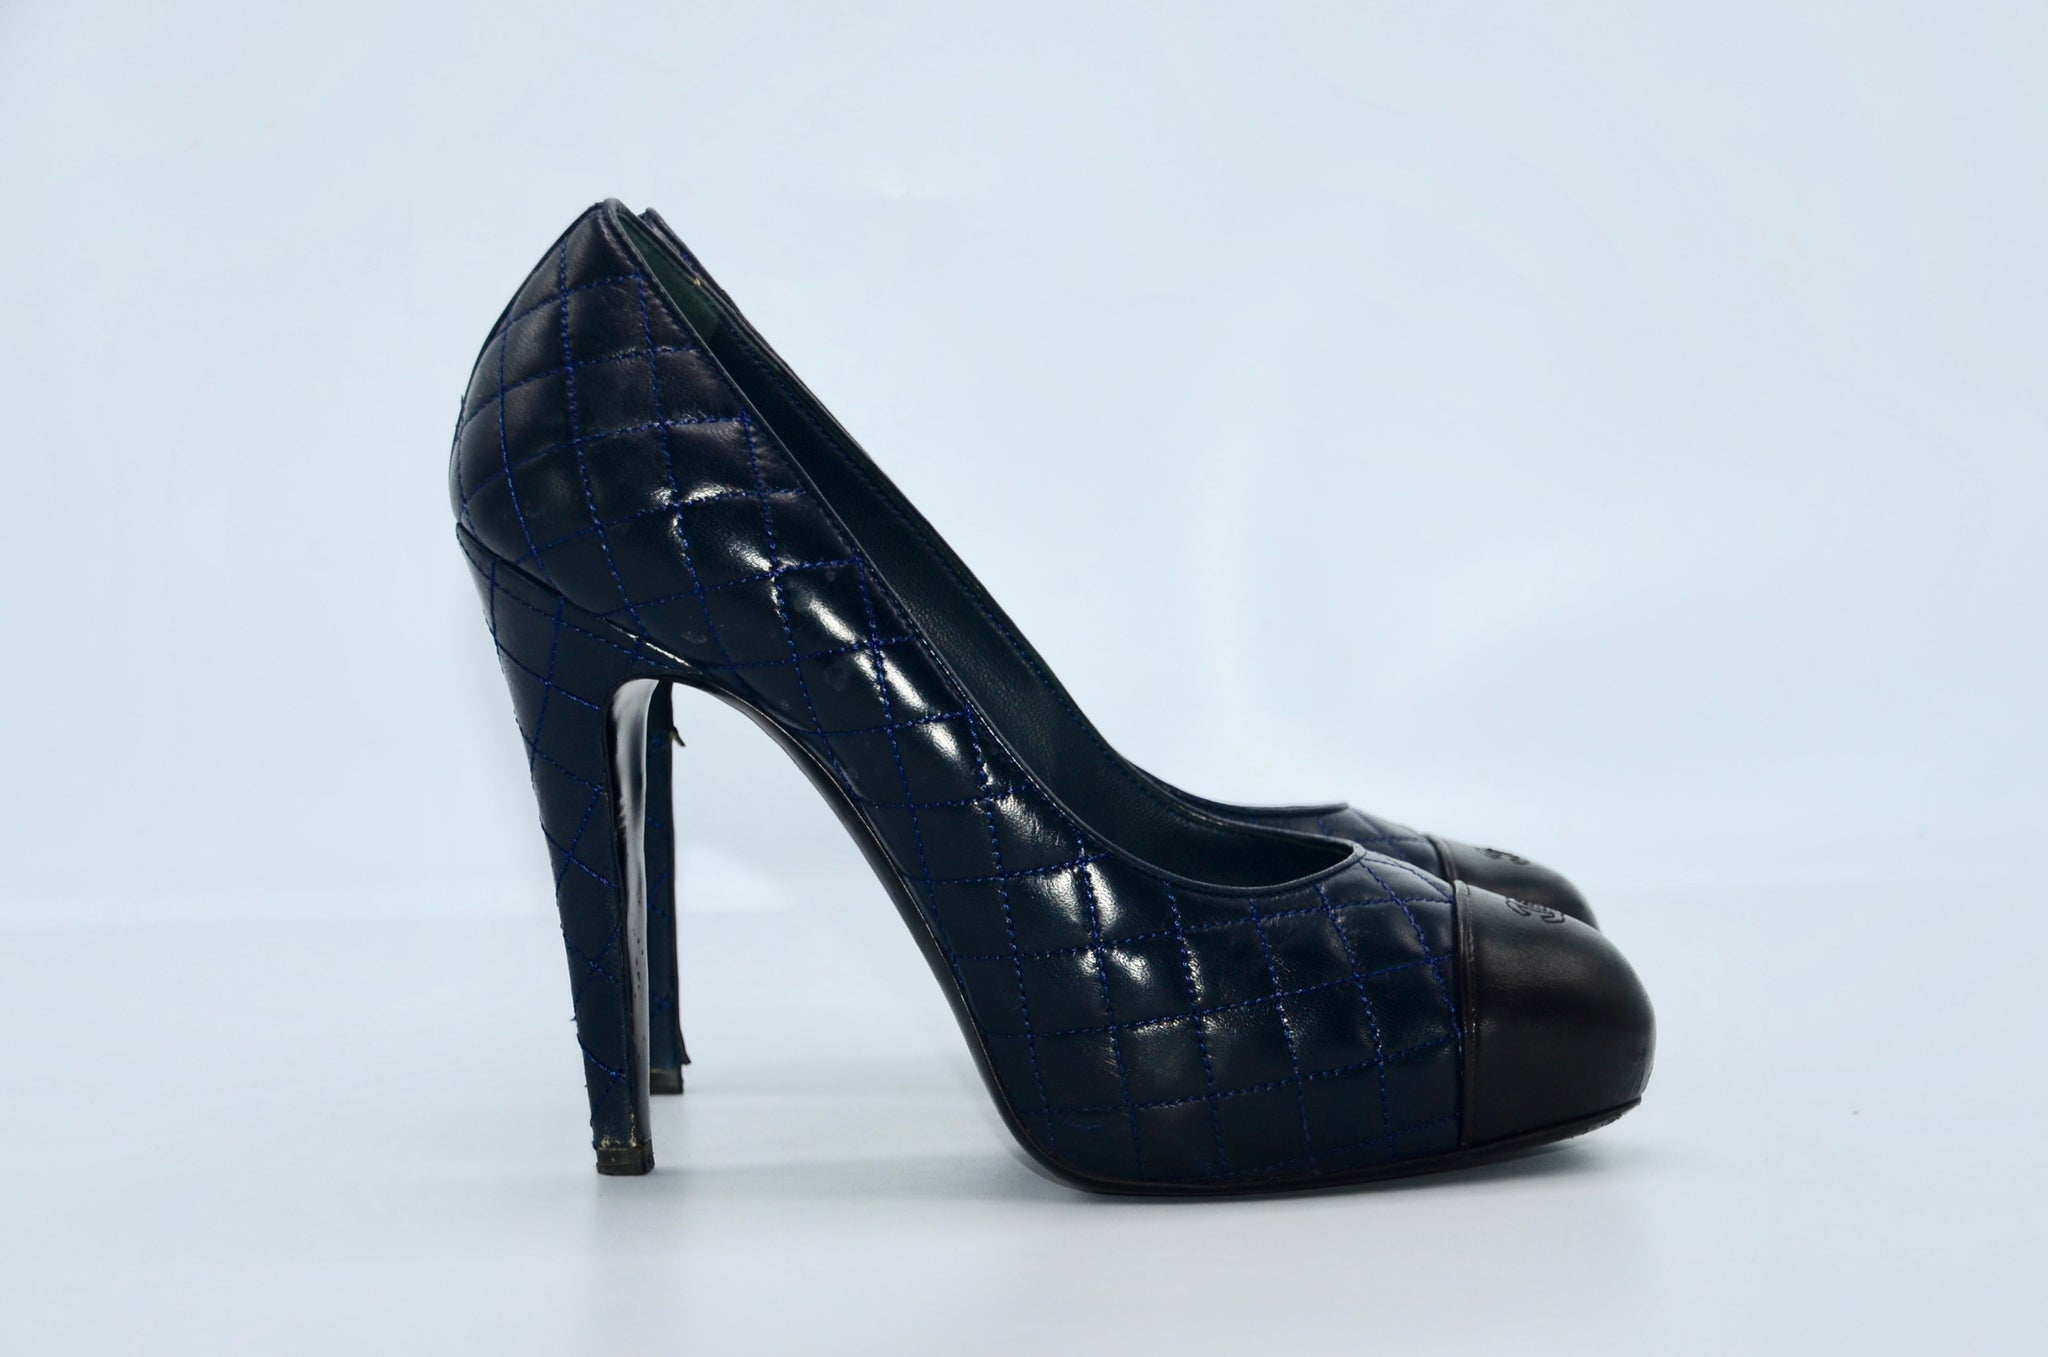 Chanel Pumps 39 - Iconics Preloved Luxury